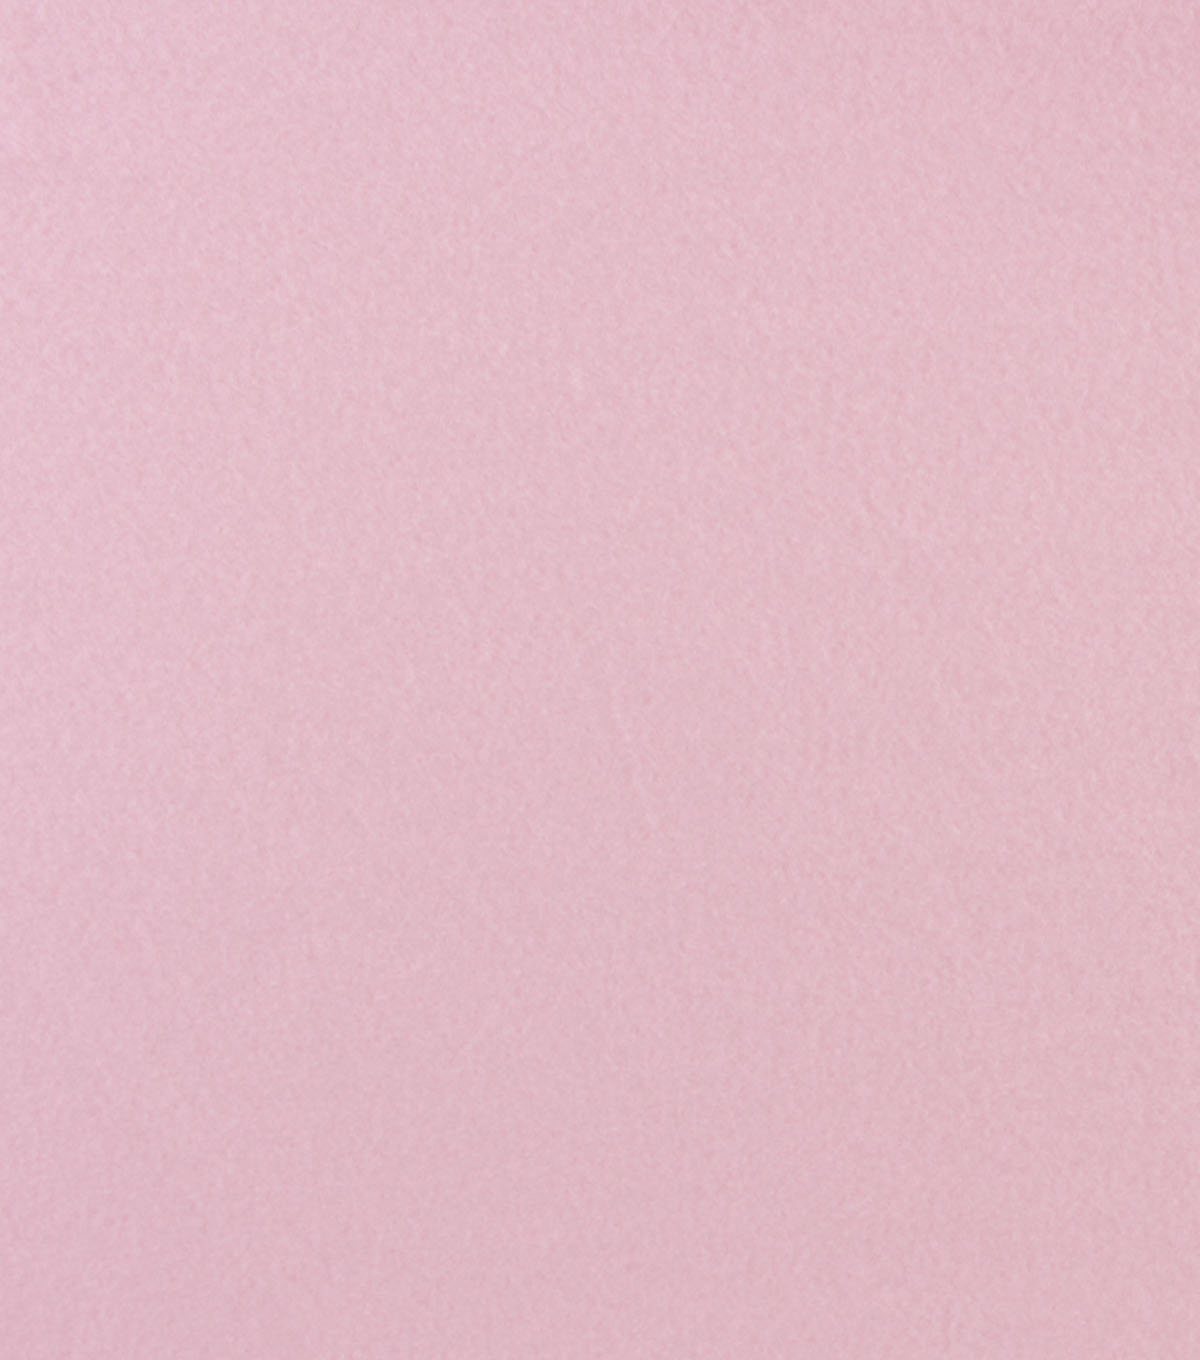 Blizzard Fleece Fabric -Solids, Rose Shadow